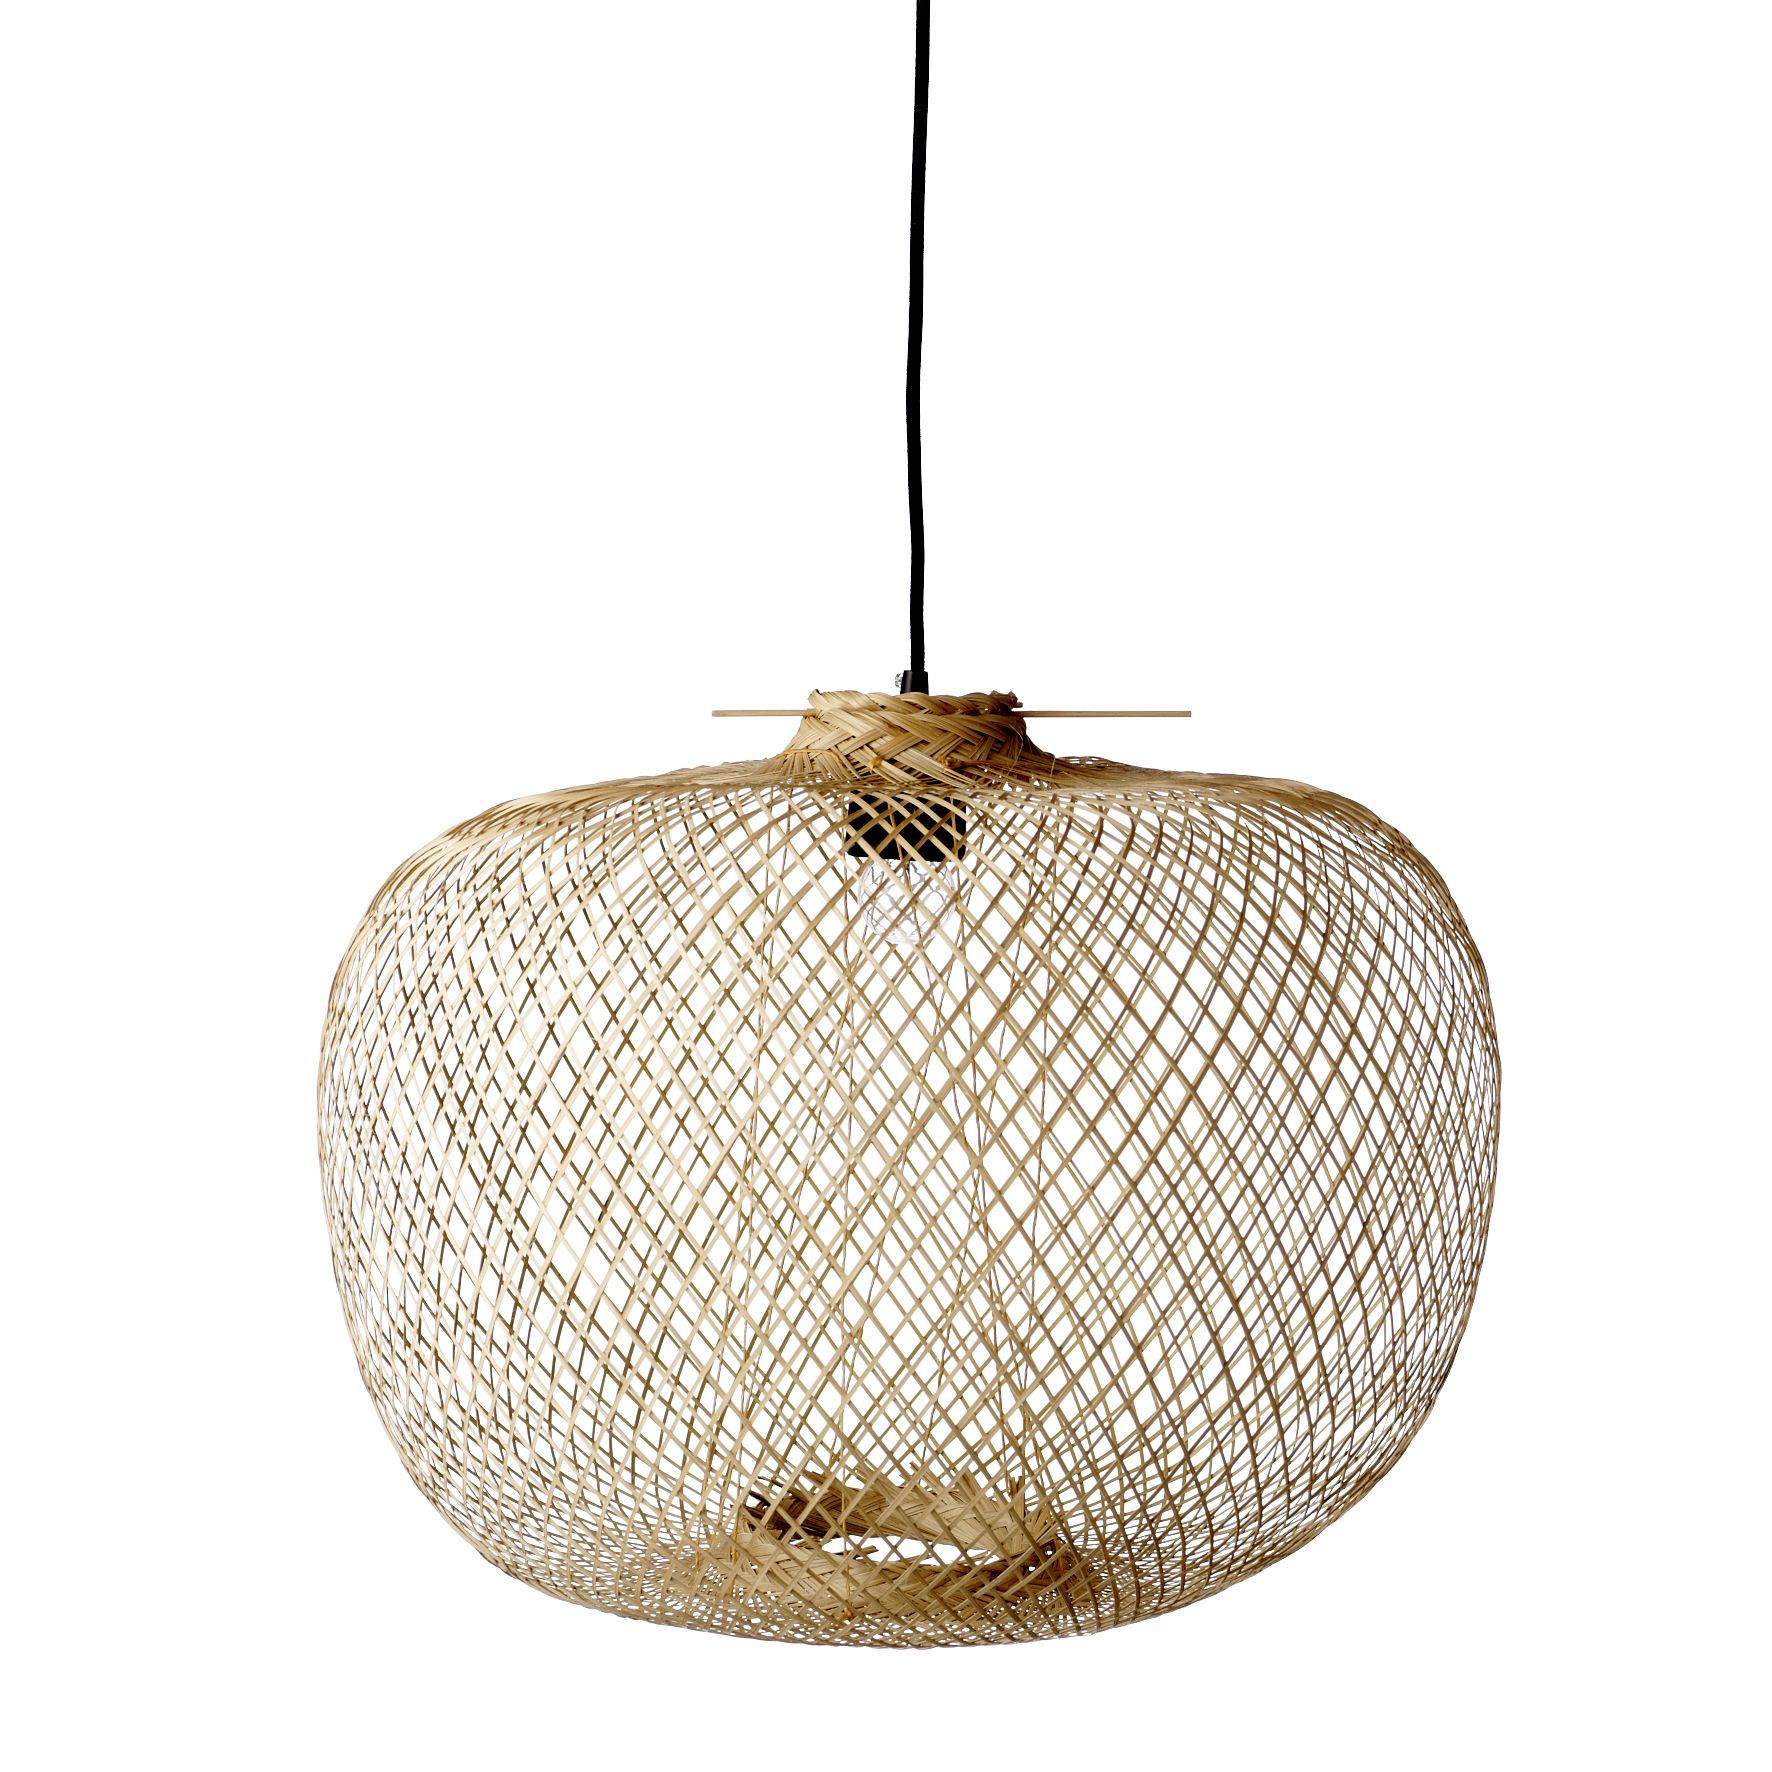 Handmade Lamp From Bloomingville Originally Used In Thailand As Fish Trap Www Bloomingville Com Bamboo Pendant Light Bamboo Lamp Bamboo Light